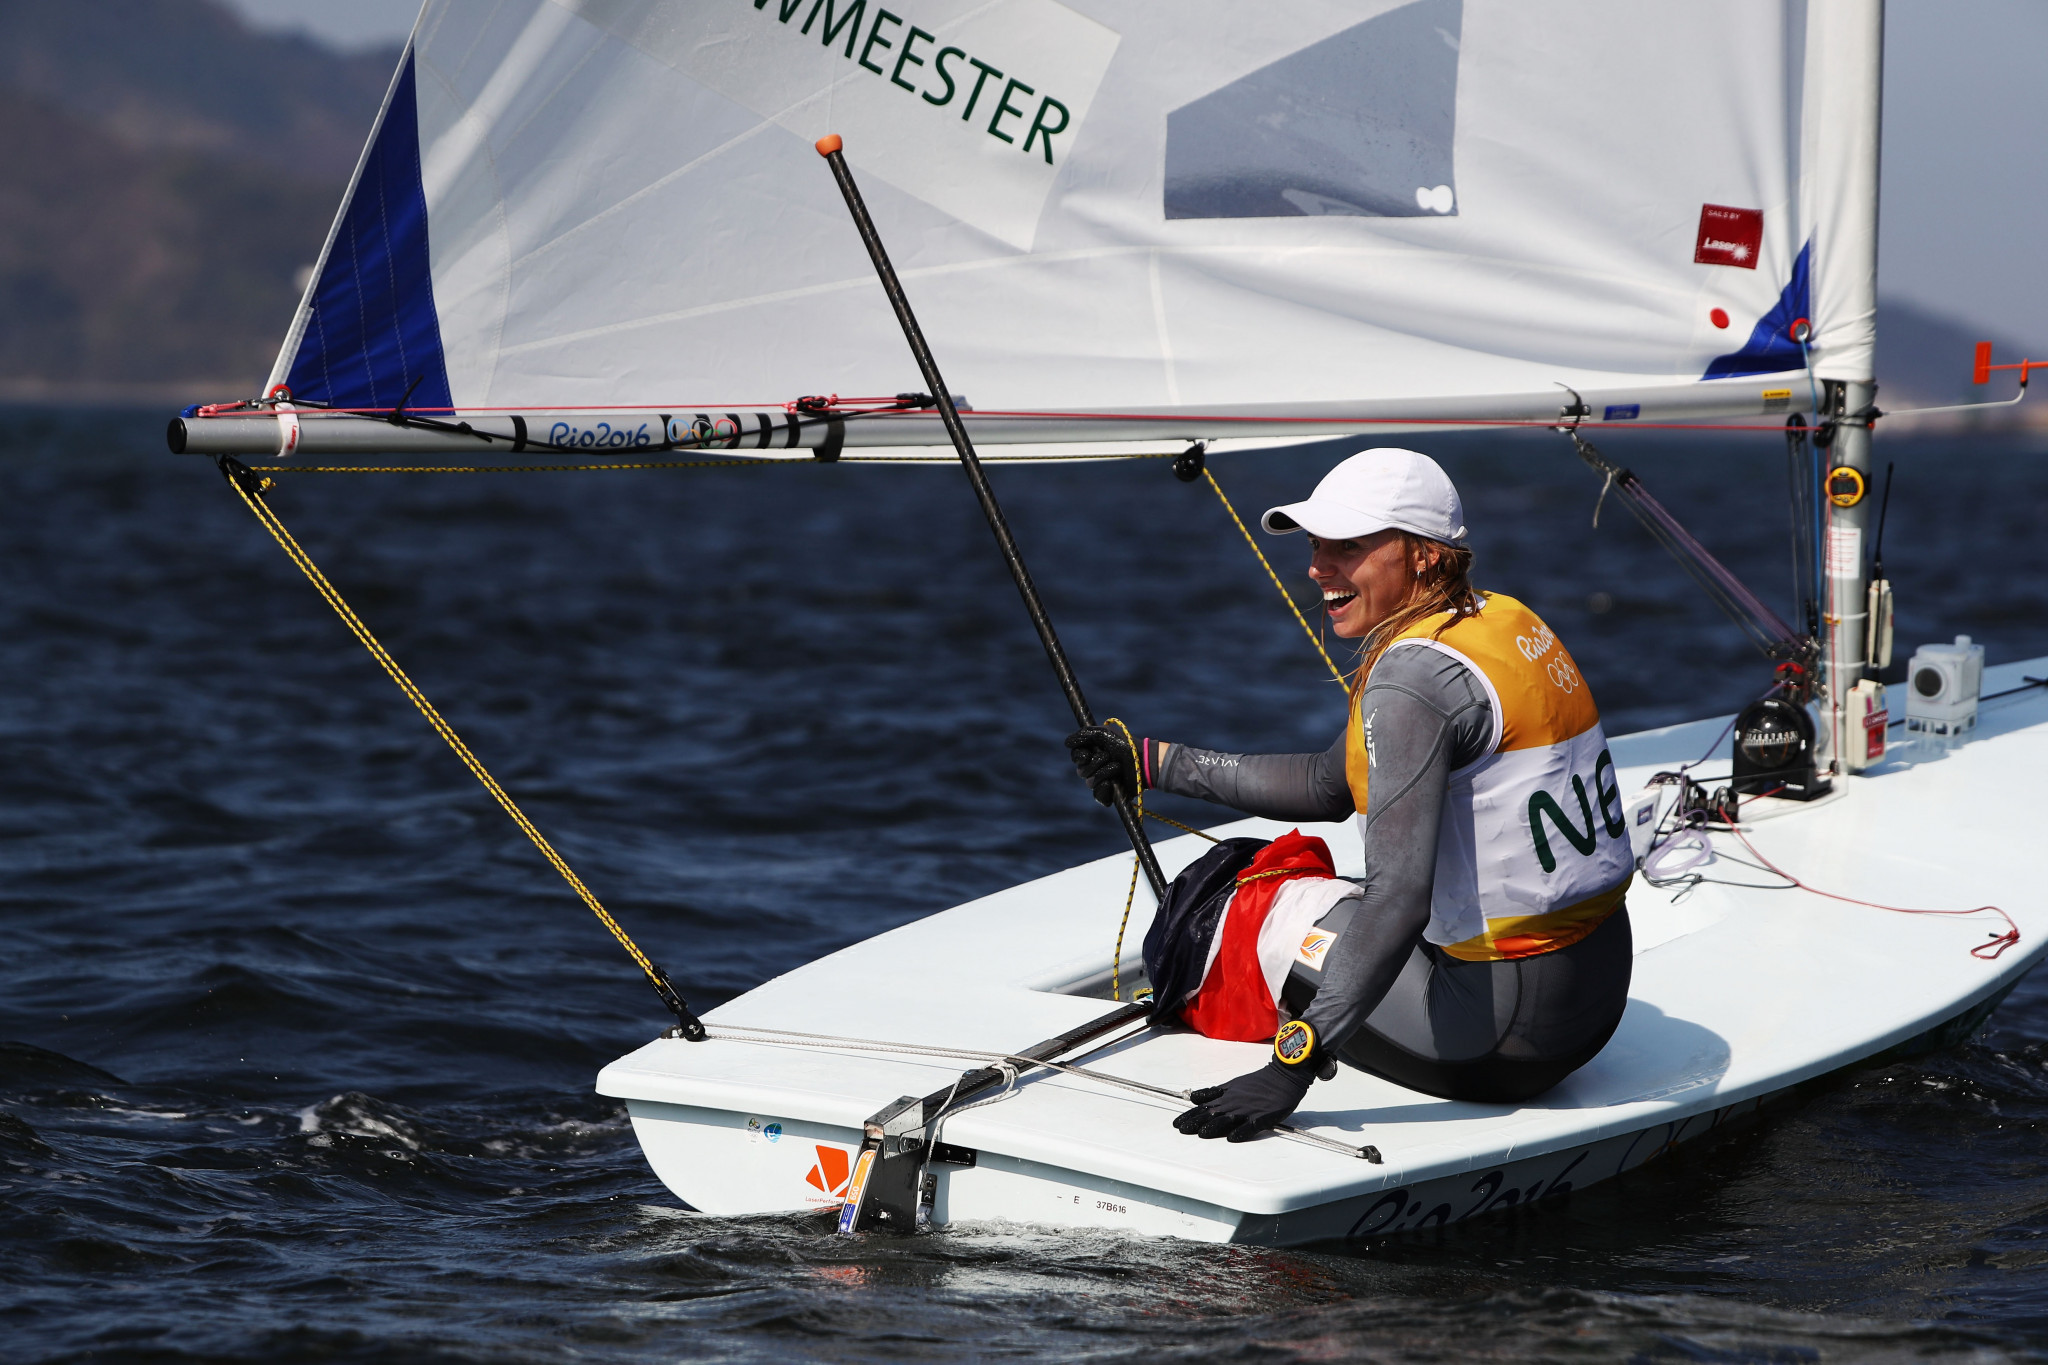 Weather comes to rescue as Bouwmeester secures gold at Laser Radial Women's World Championship